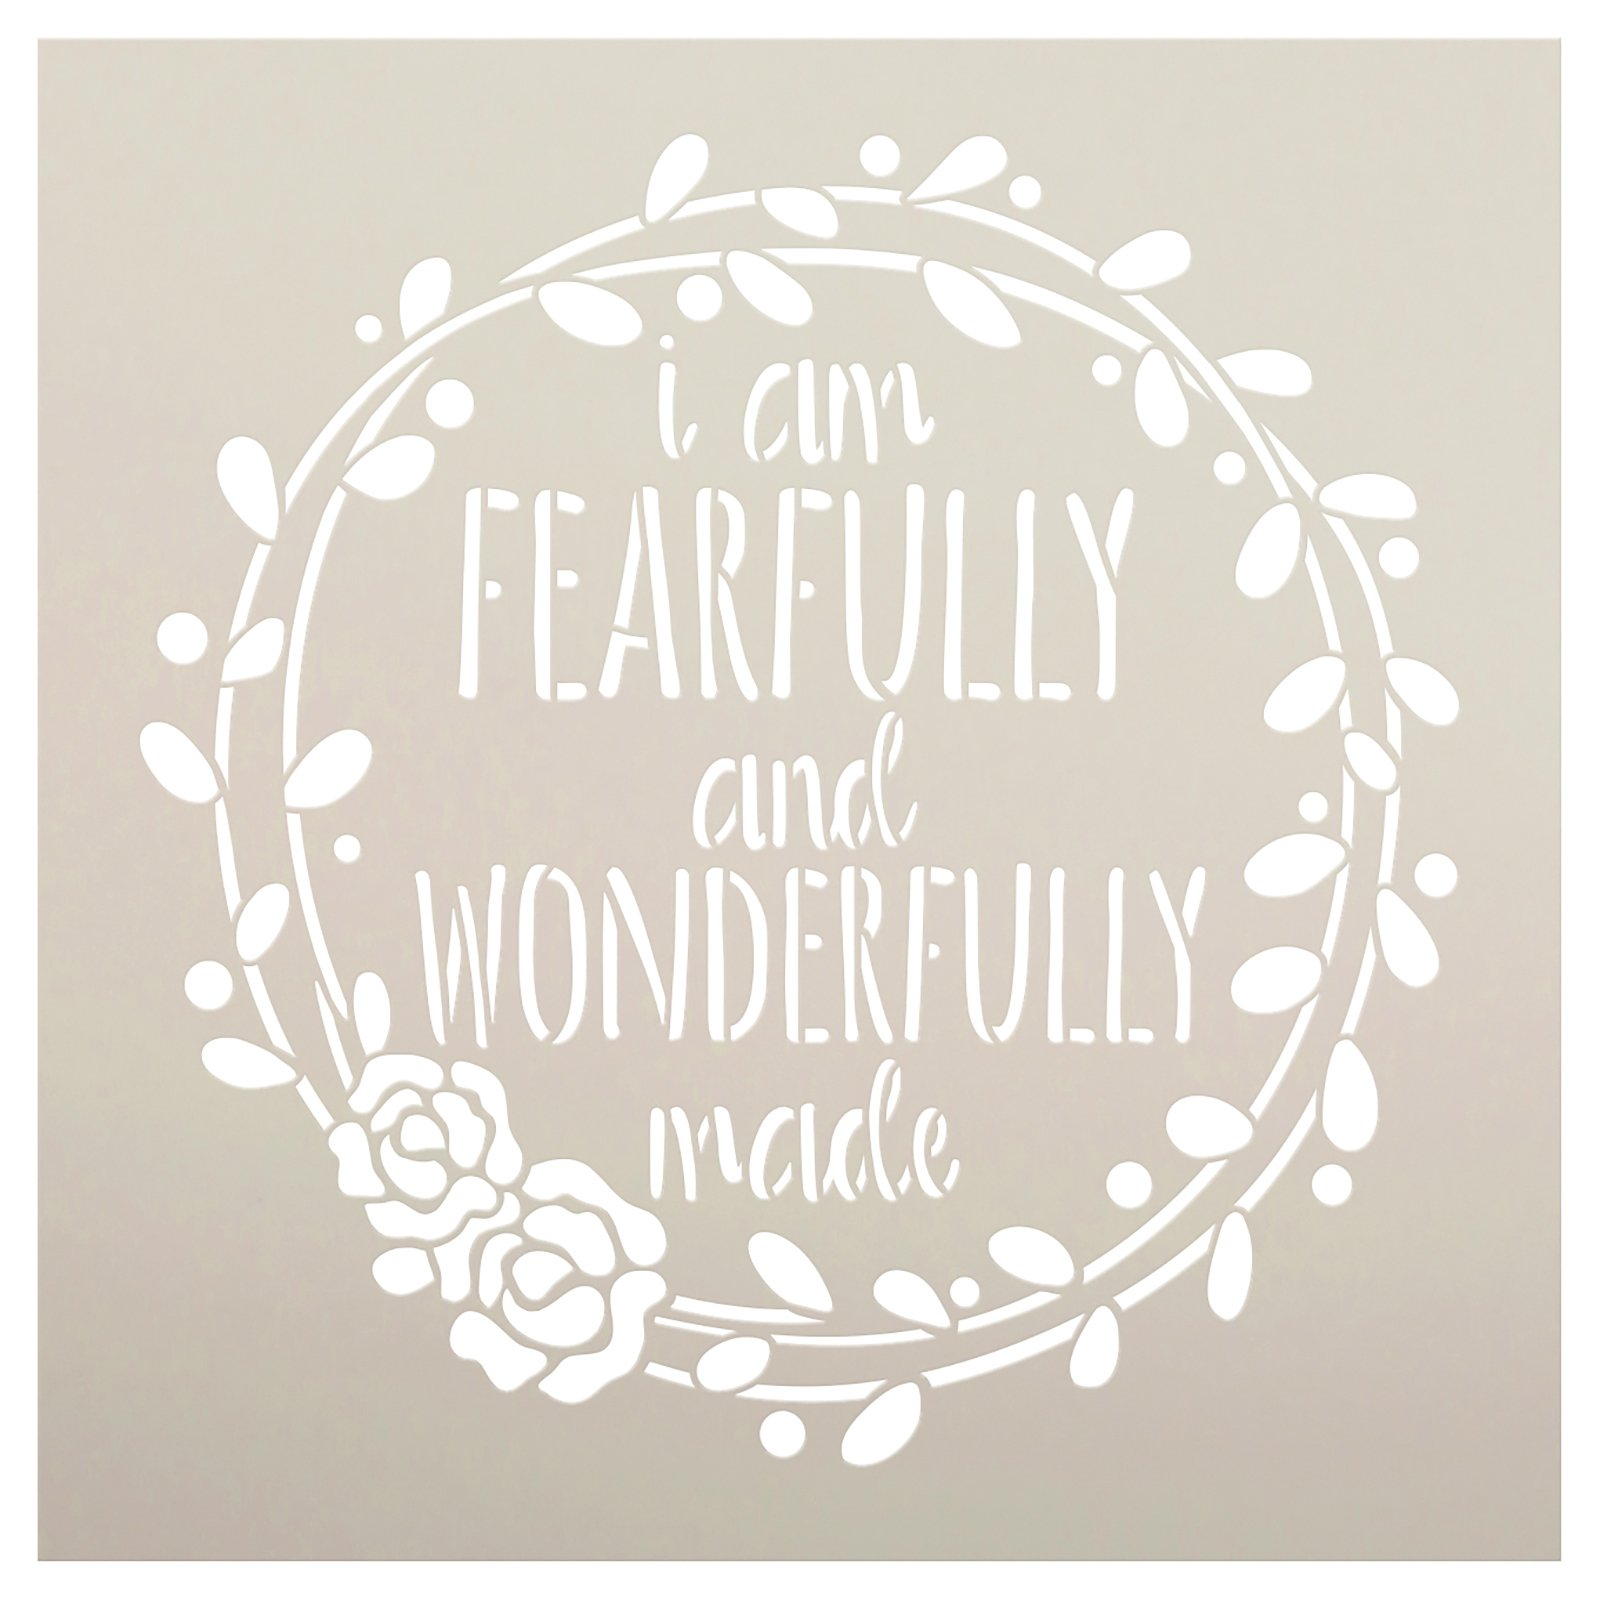 Fearfully and Wonderfully Made Wreath Stencil by StudioR12   Craft DIY Bible Home Decor   Paint Wood Sign   Reusable Mylar Template   Select Size